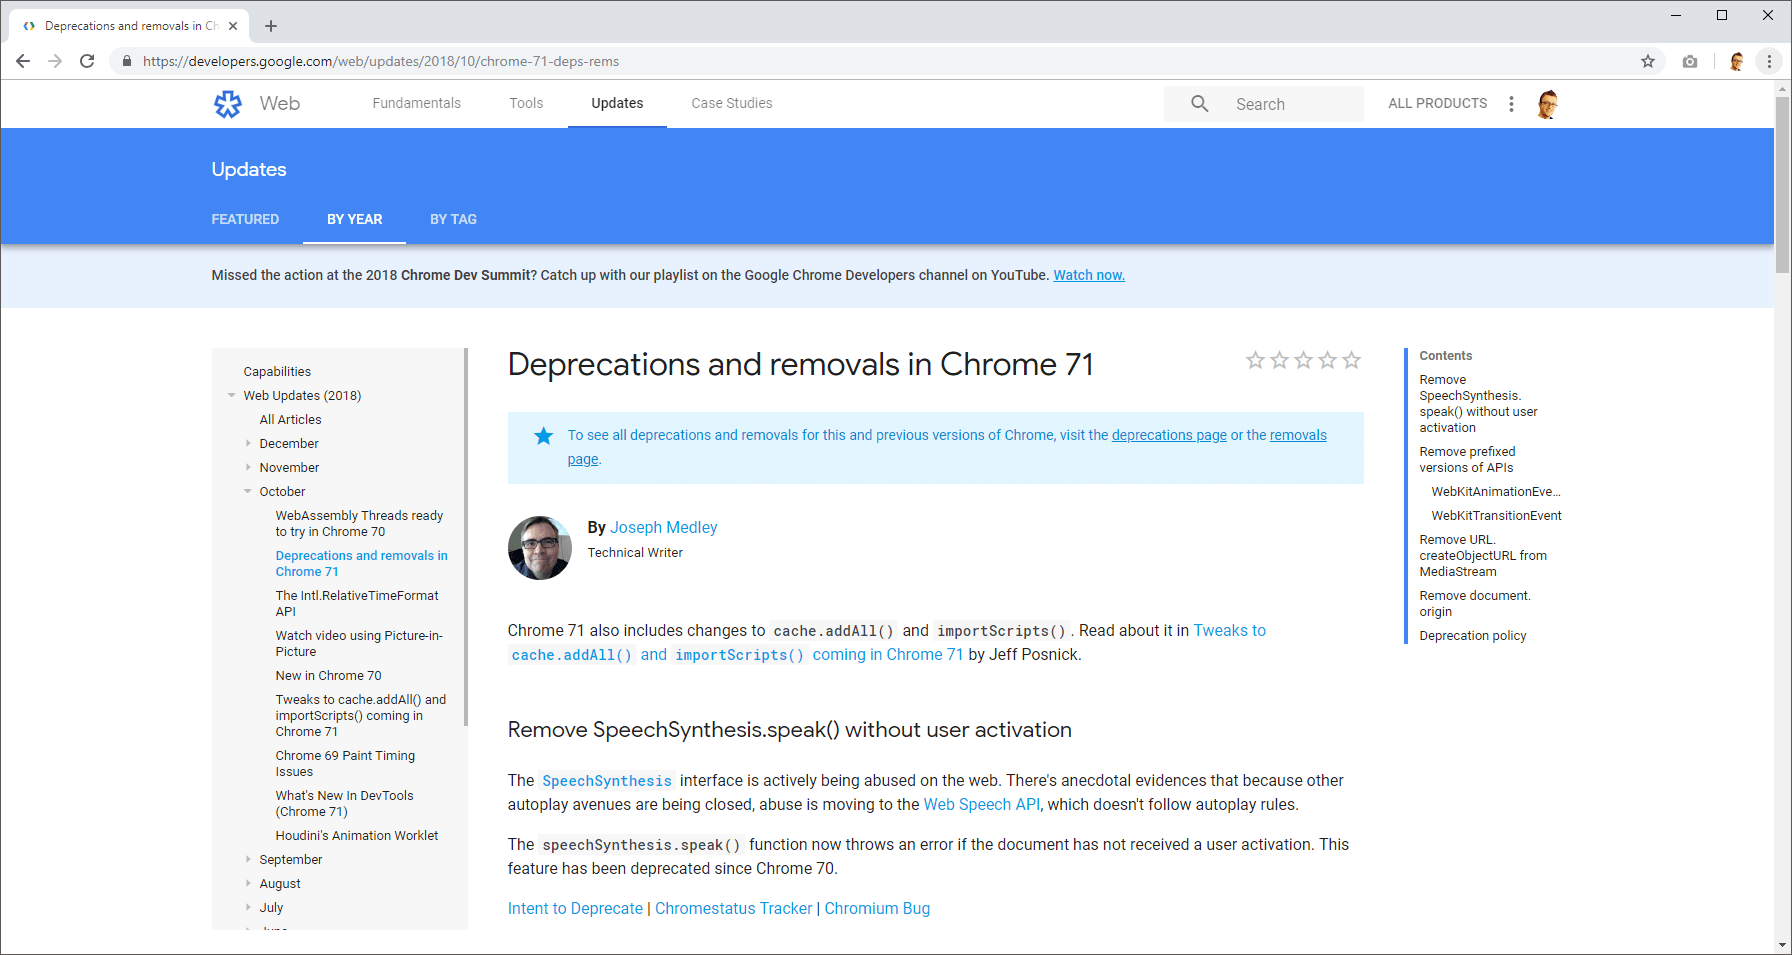 Deprecation info in Chrome